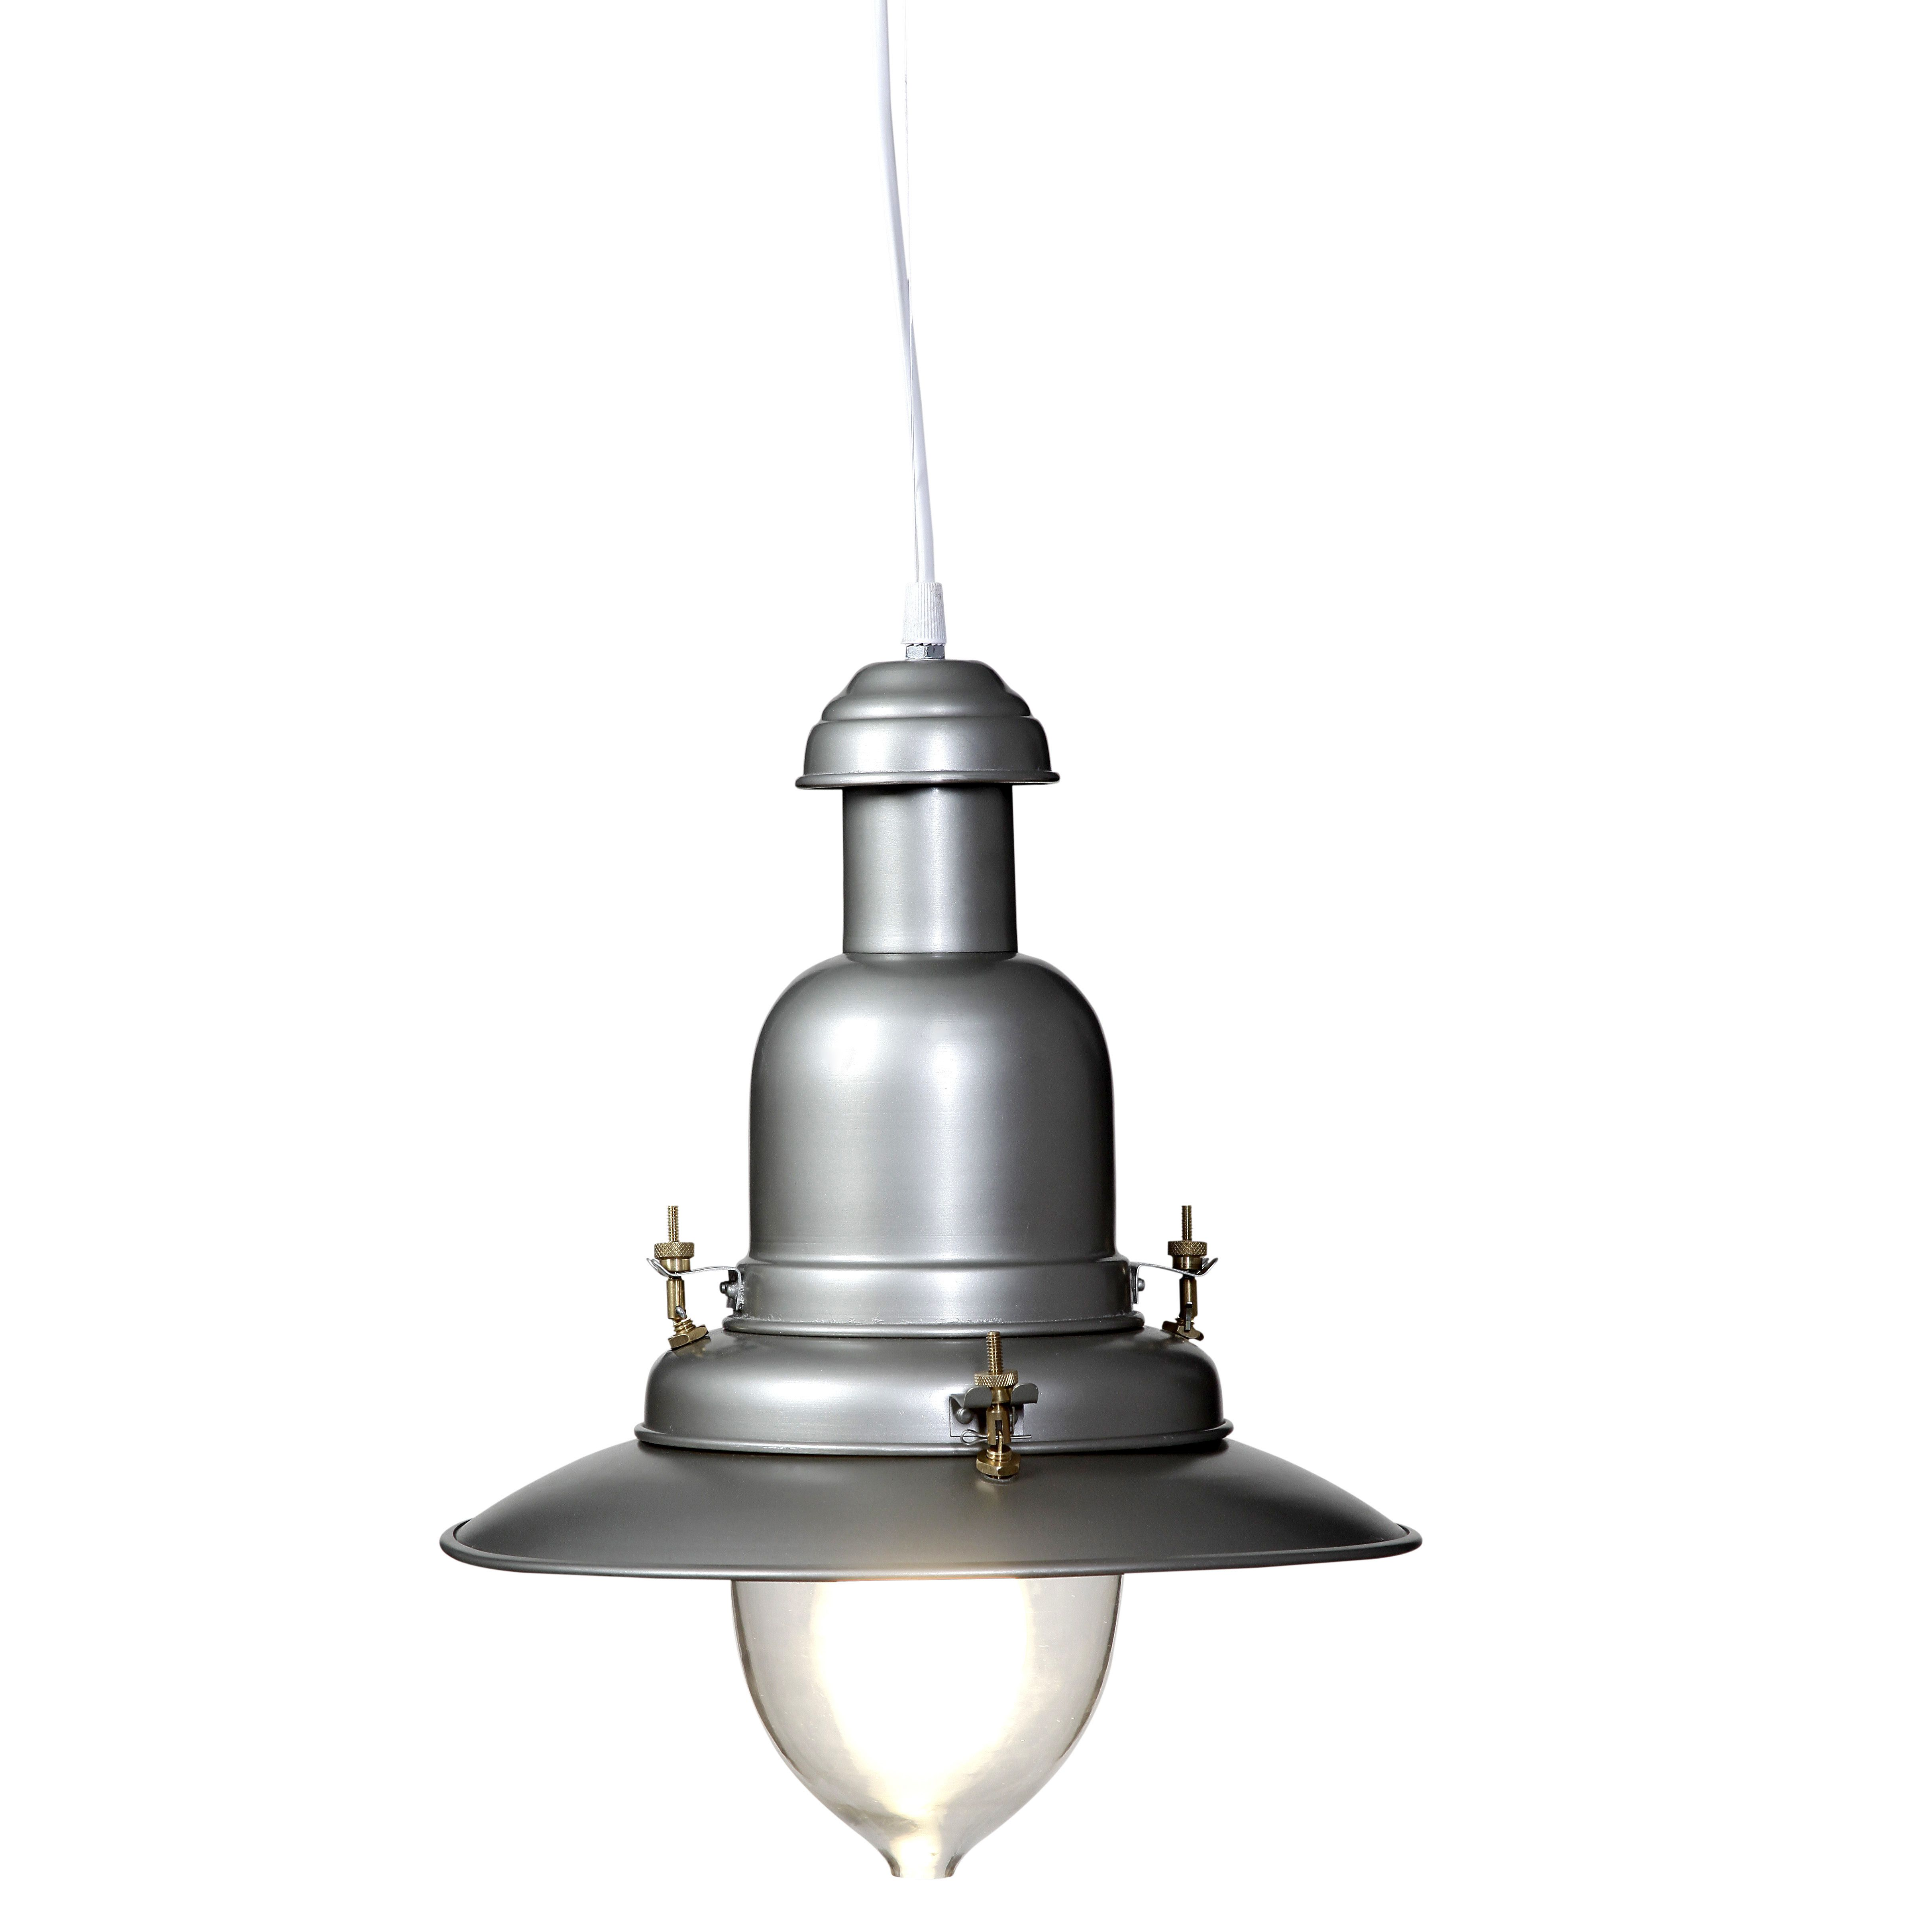 Outdoor Ceiling Lights B And Q : Mulgrave pewter effect pendant ceiling light departments